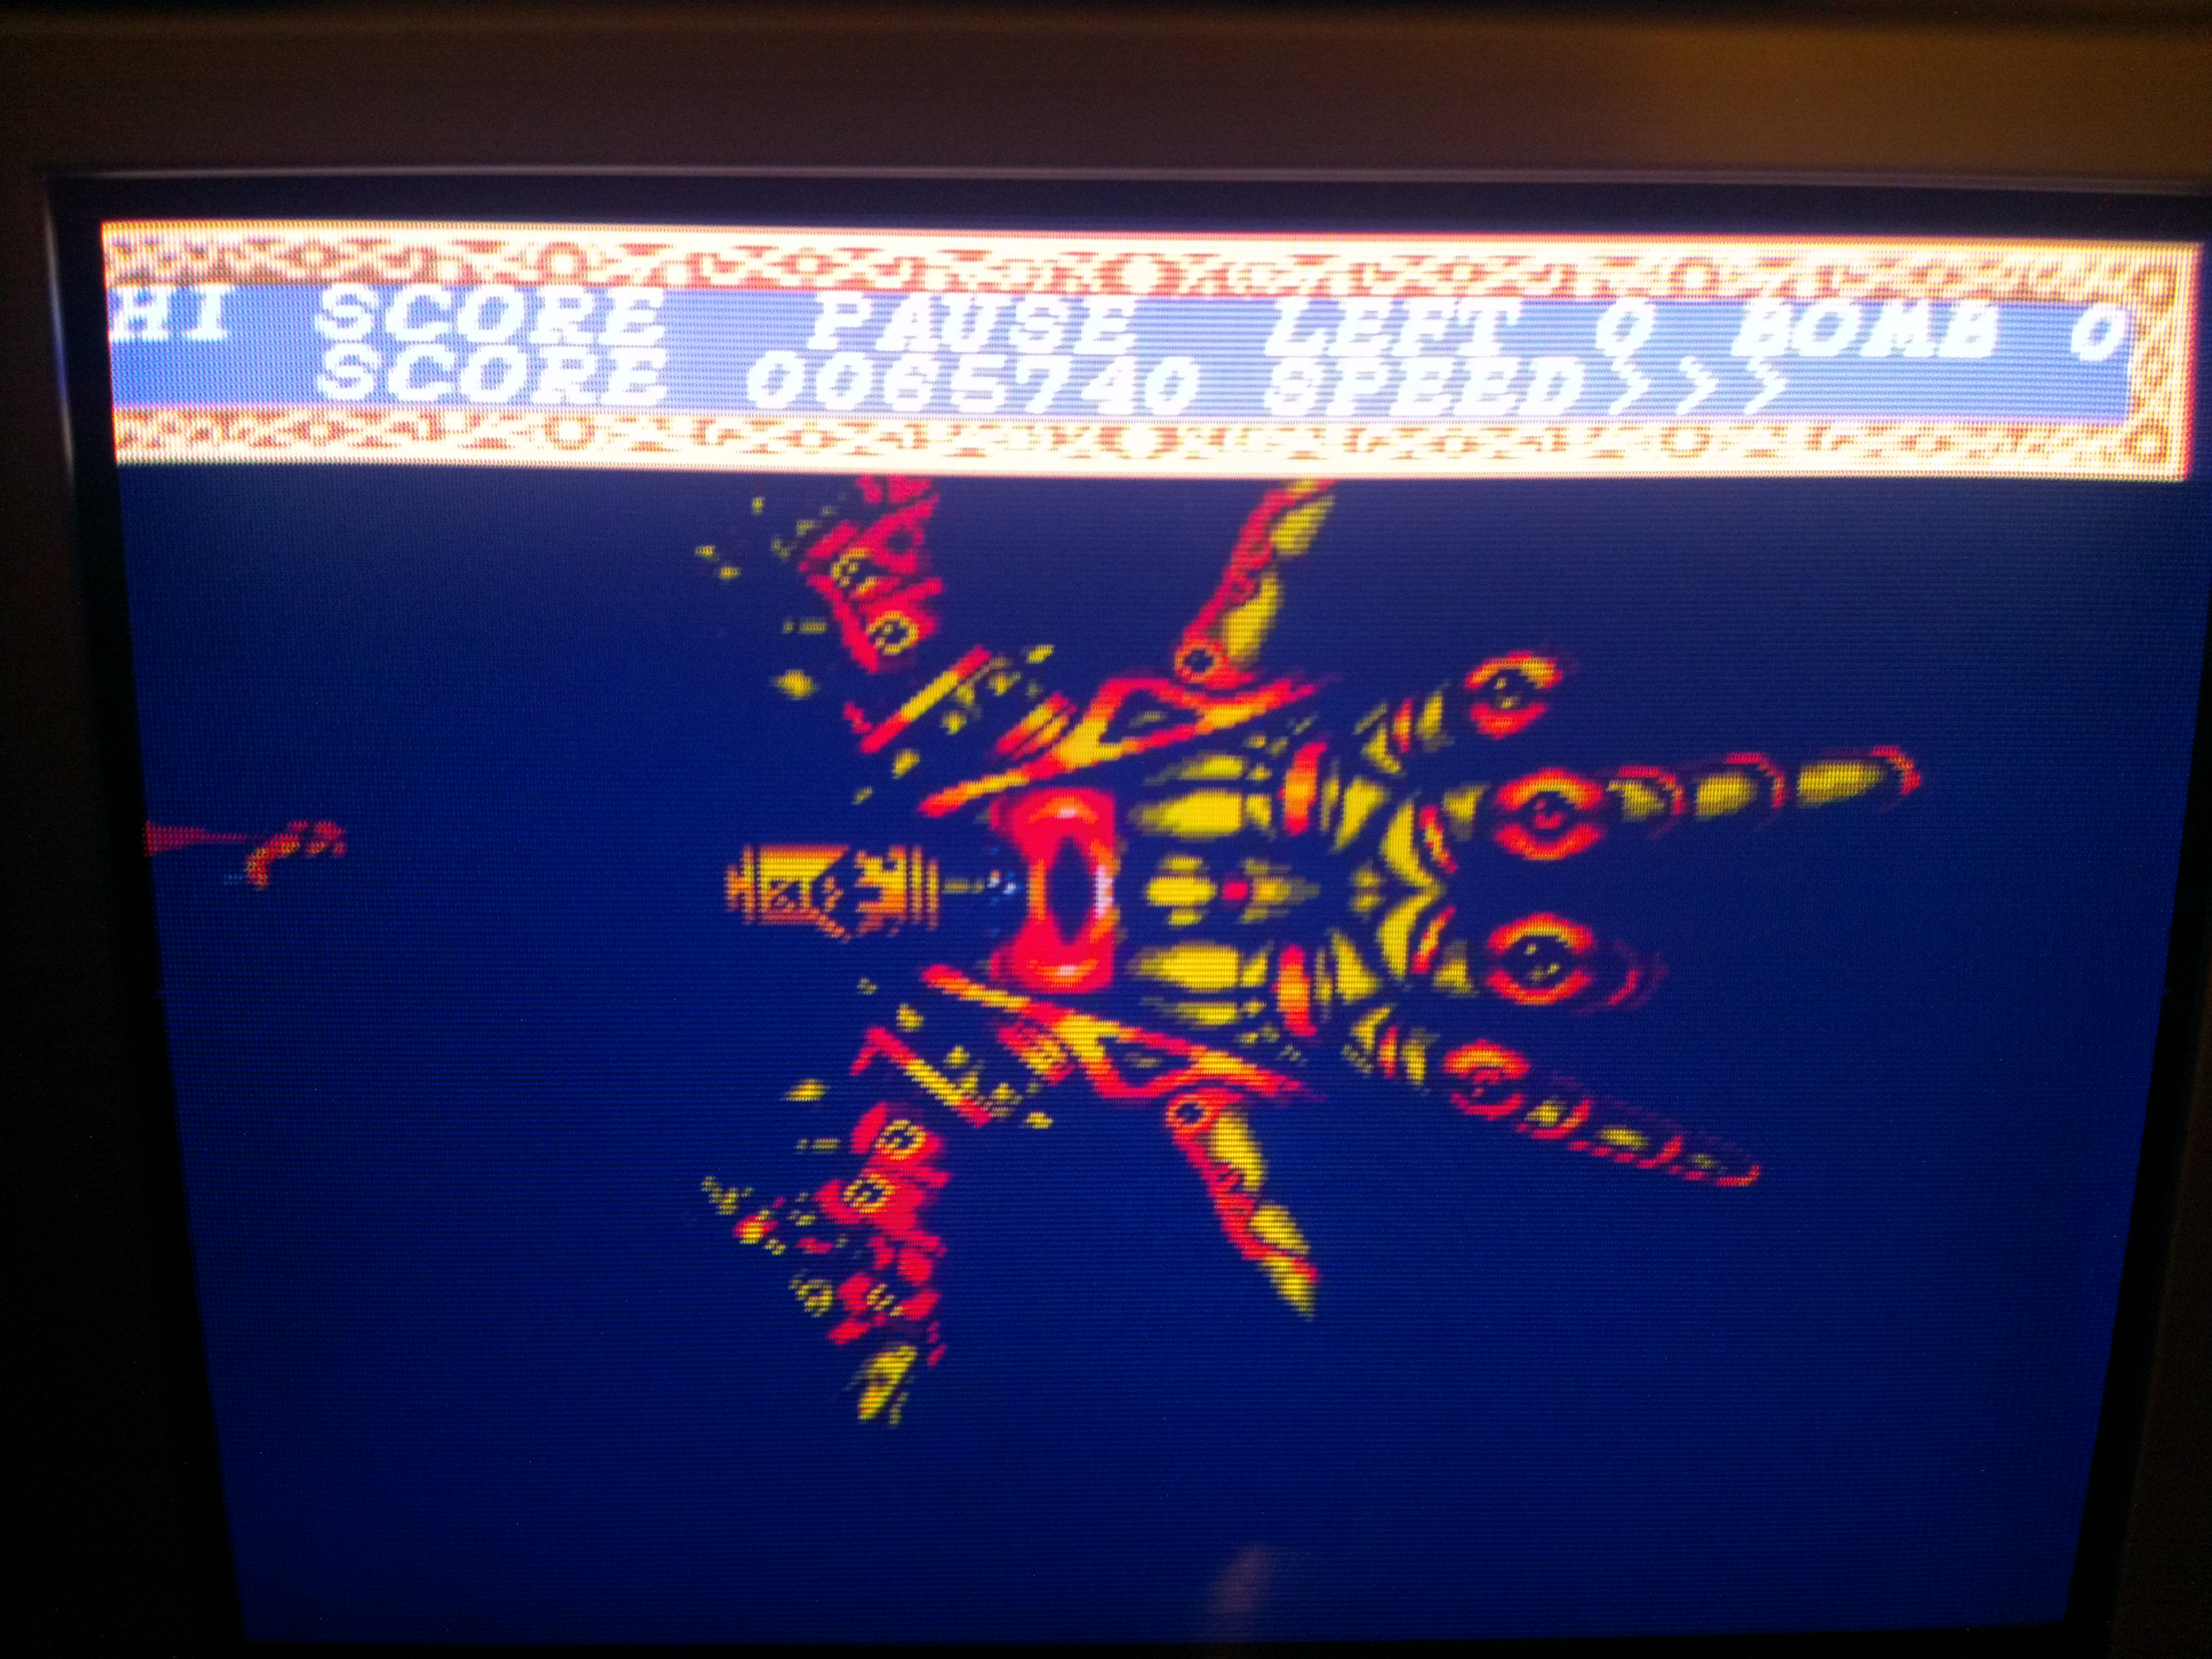 woolfman: Cho Aniki [Normal] (TurboGrafx-16/PC Engine) 65,740 points on 2014-09-06 09:13:54